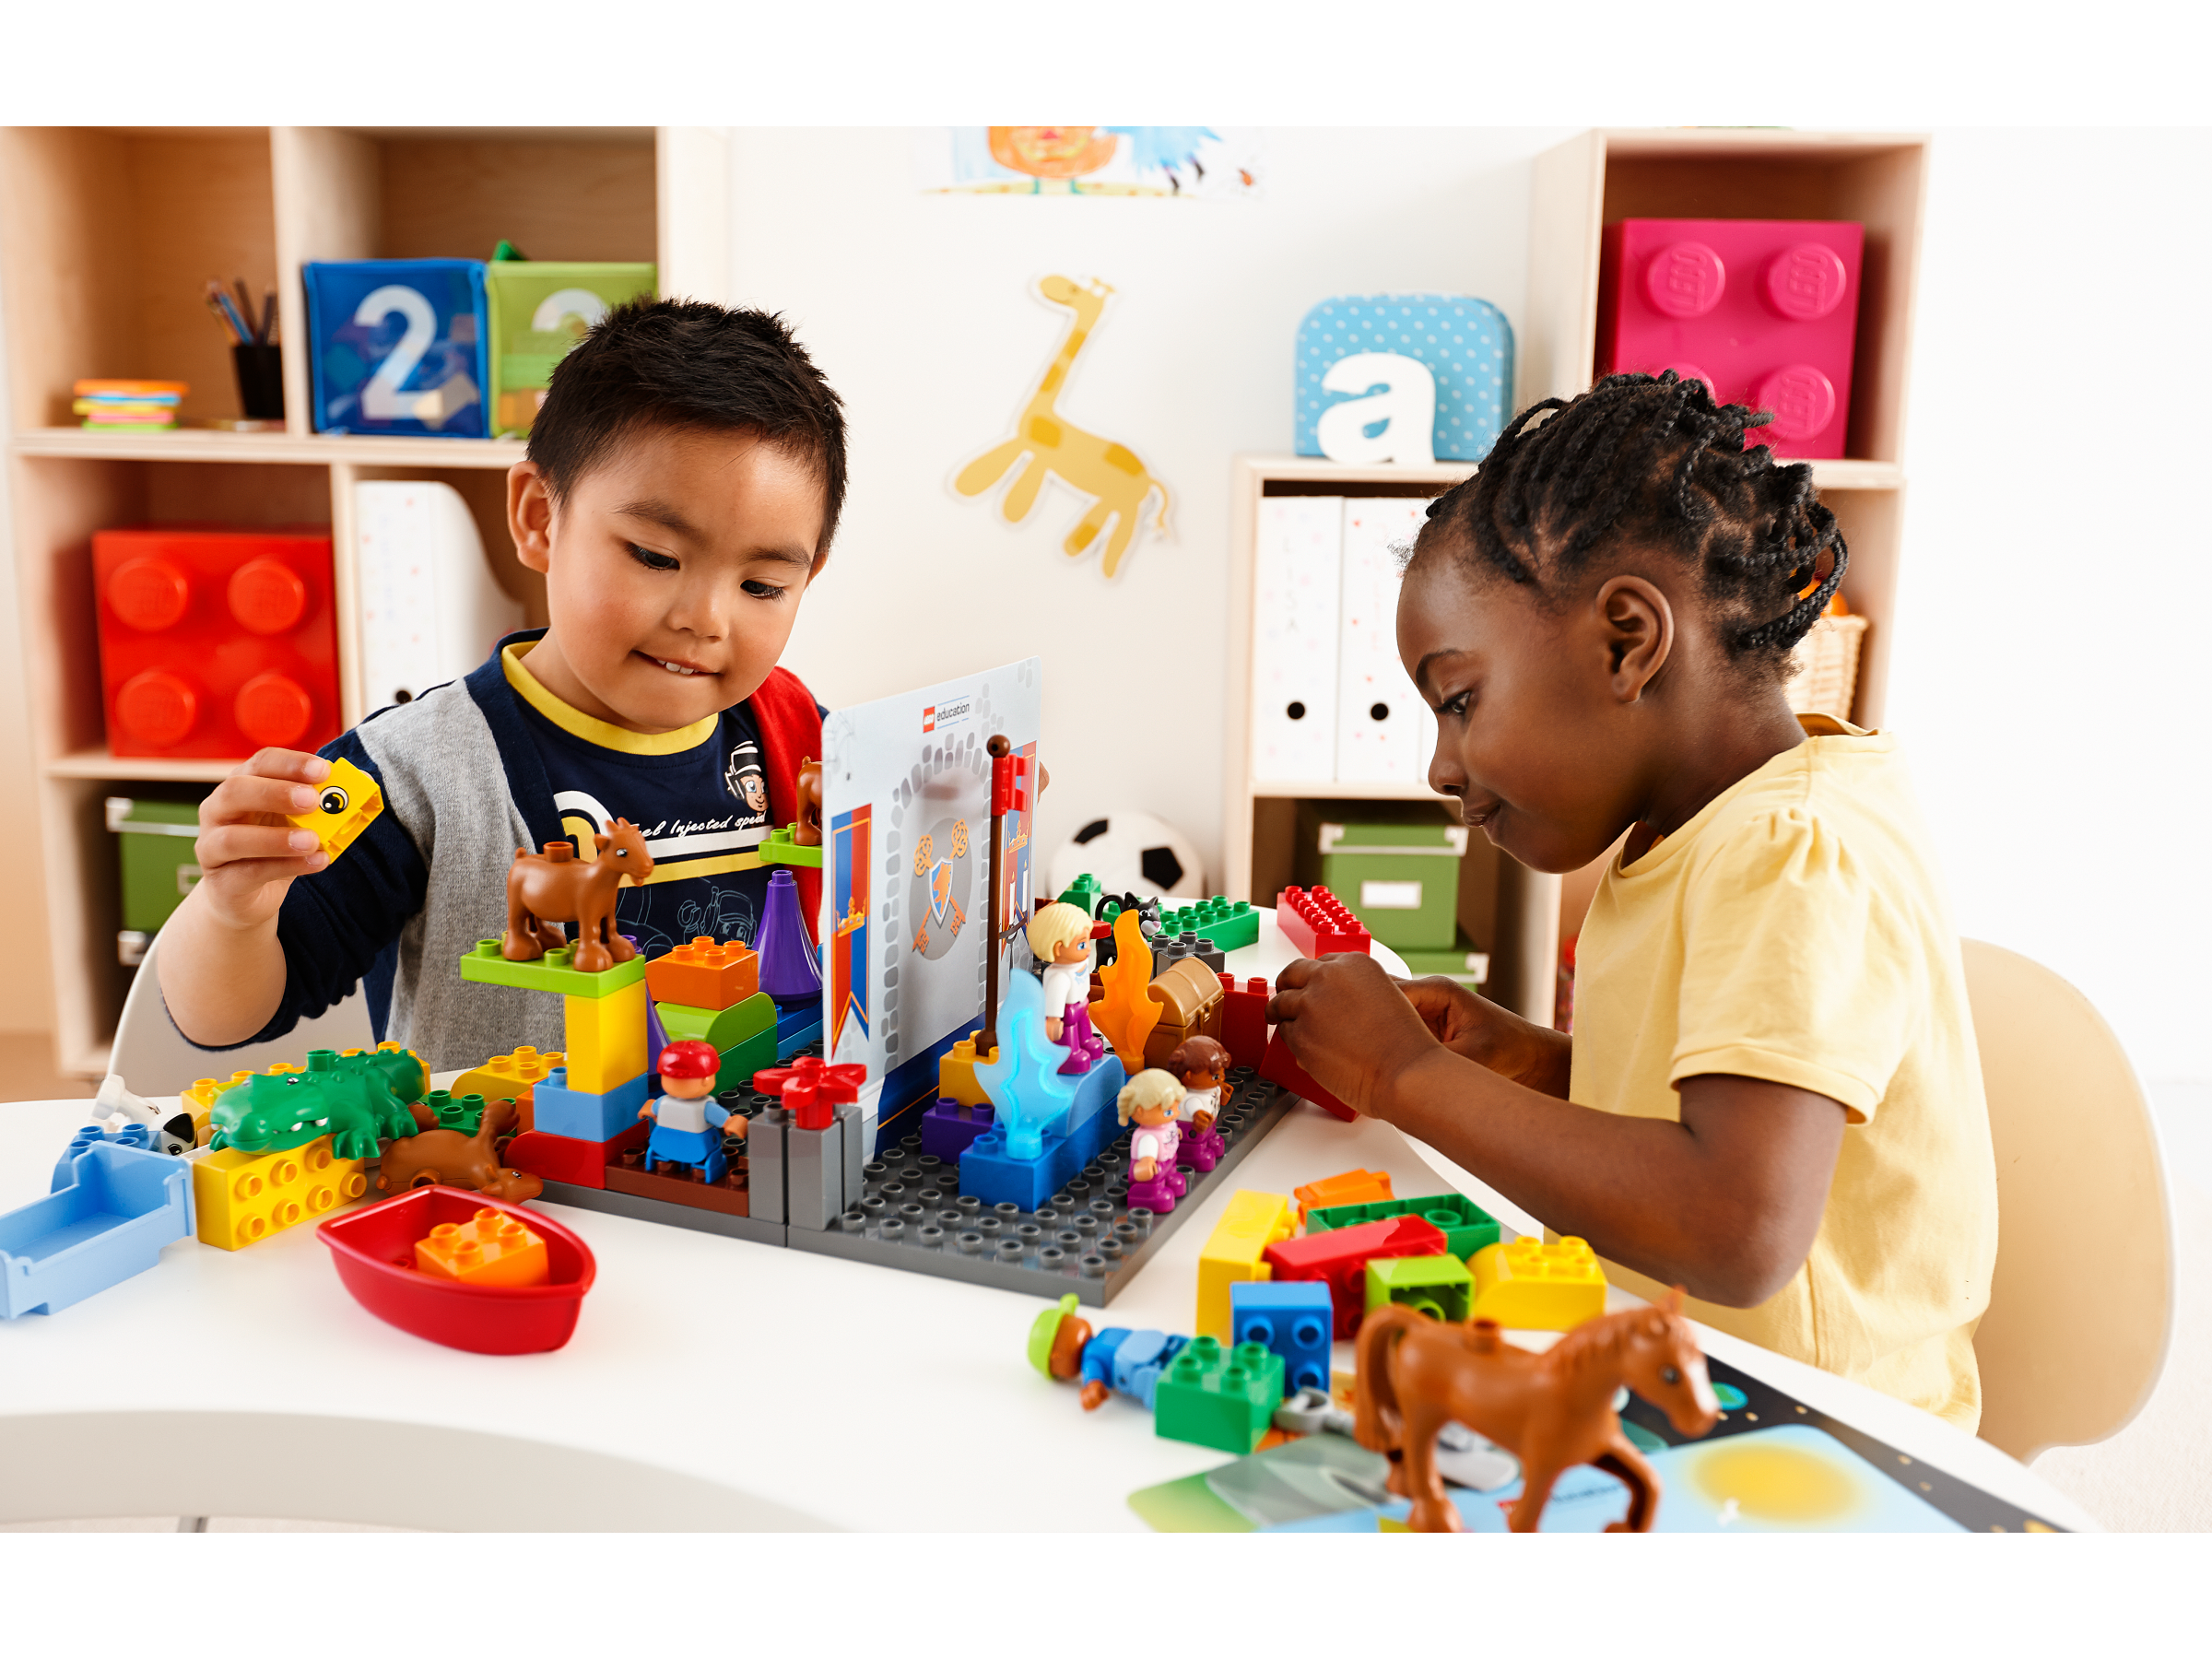 Two preschool children playing with StoryTales by LEGO® Education, developing their storytelling skills.